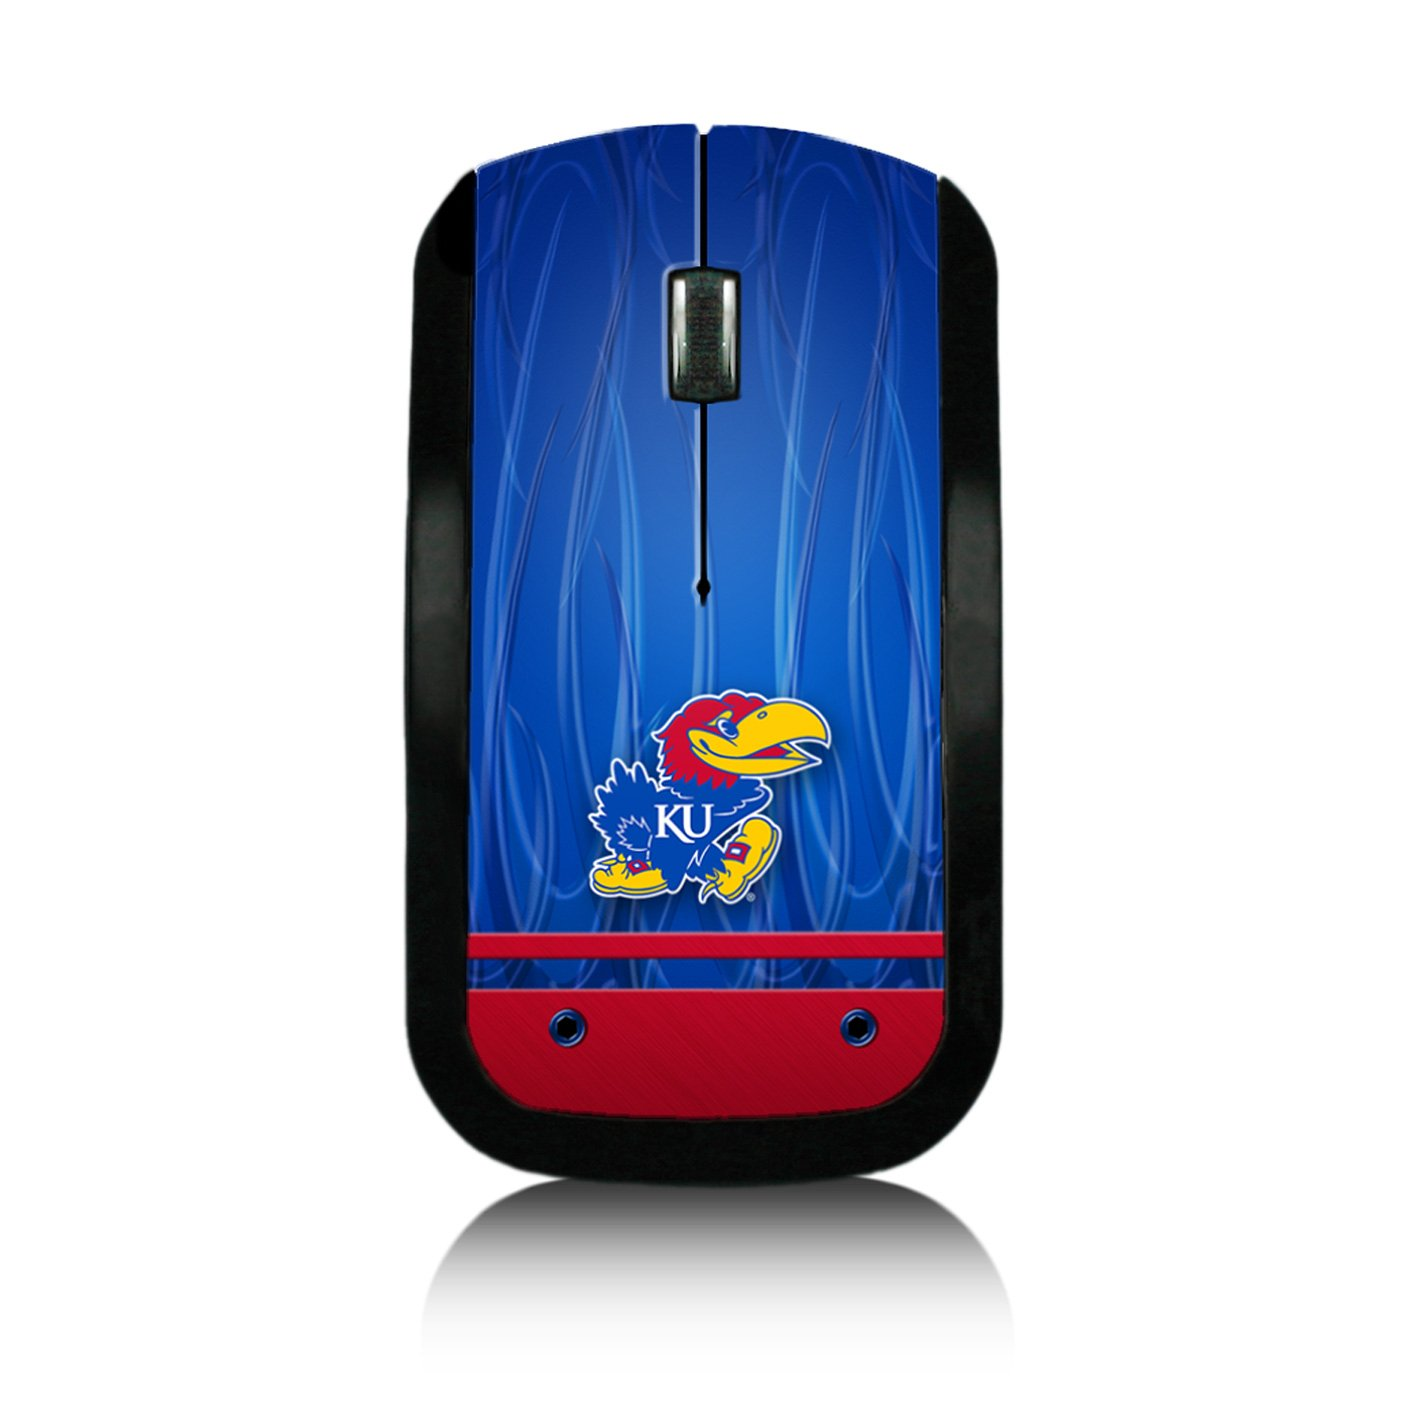 Keyscaper NCAA Wireless USB Mouse in Ghost